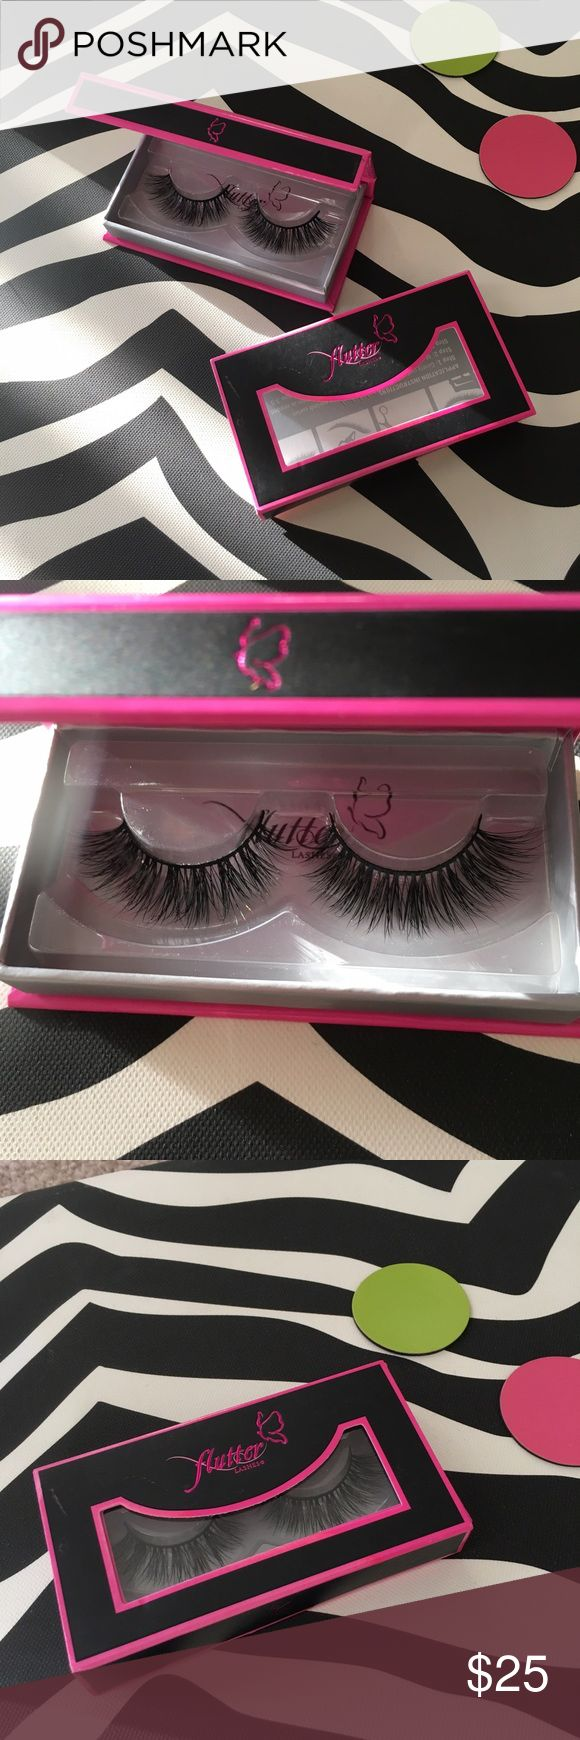 Mink Flutter Lashes in Annabelle Brand new mink lashes. Never used by Flutter lash. Made like no other! Perfect for an occasion. Super sexy 💋 Flutter Lashes Makeup False Eyelashes